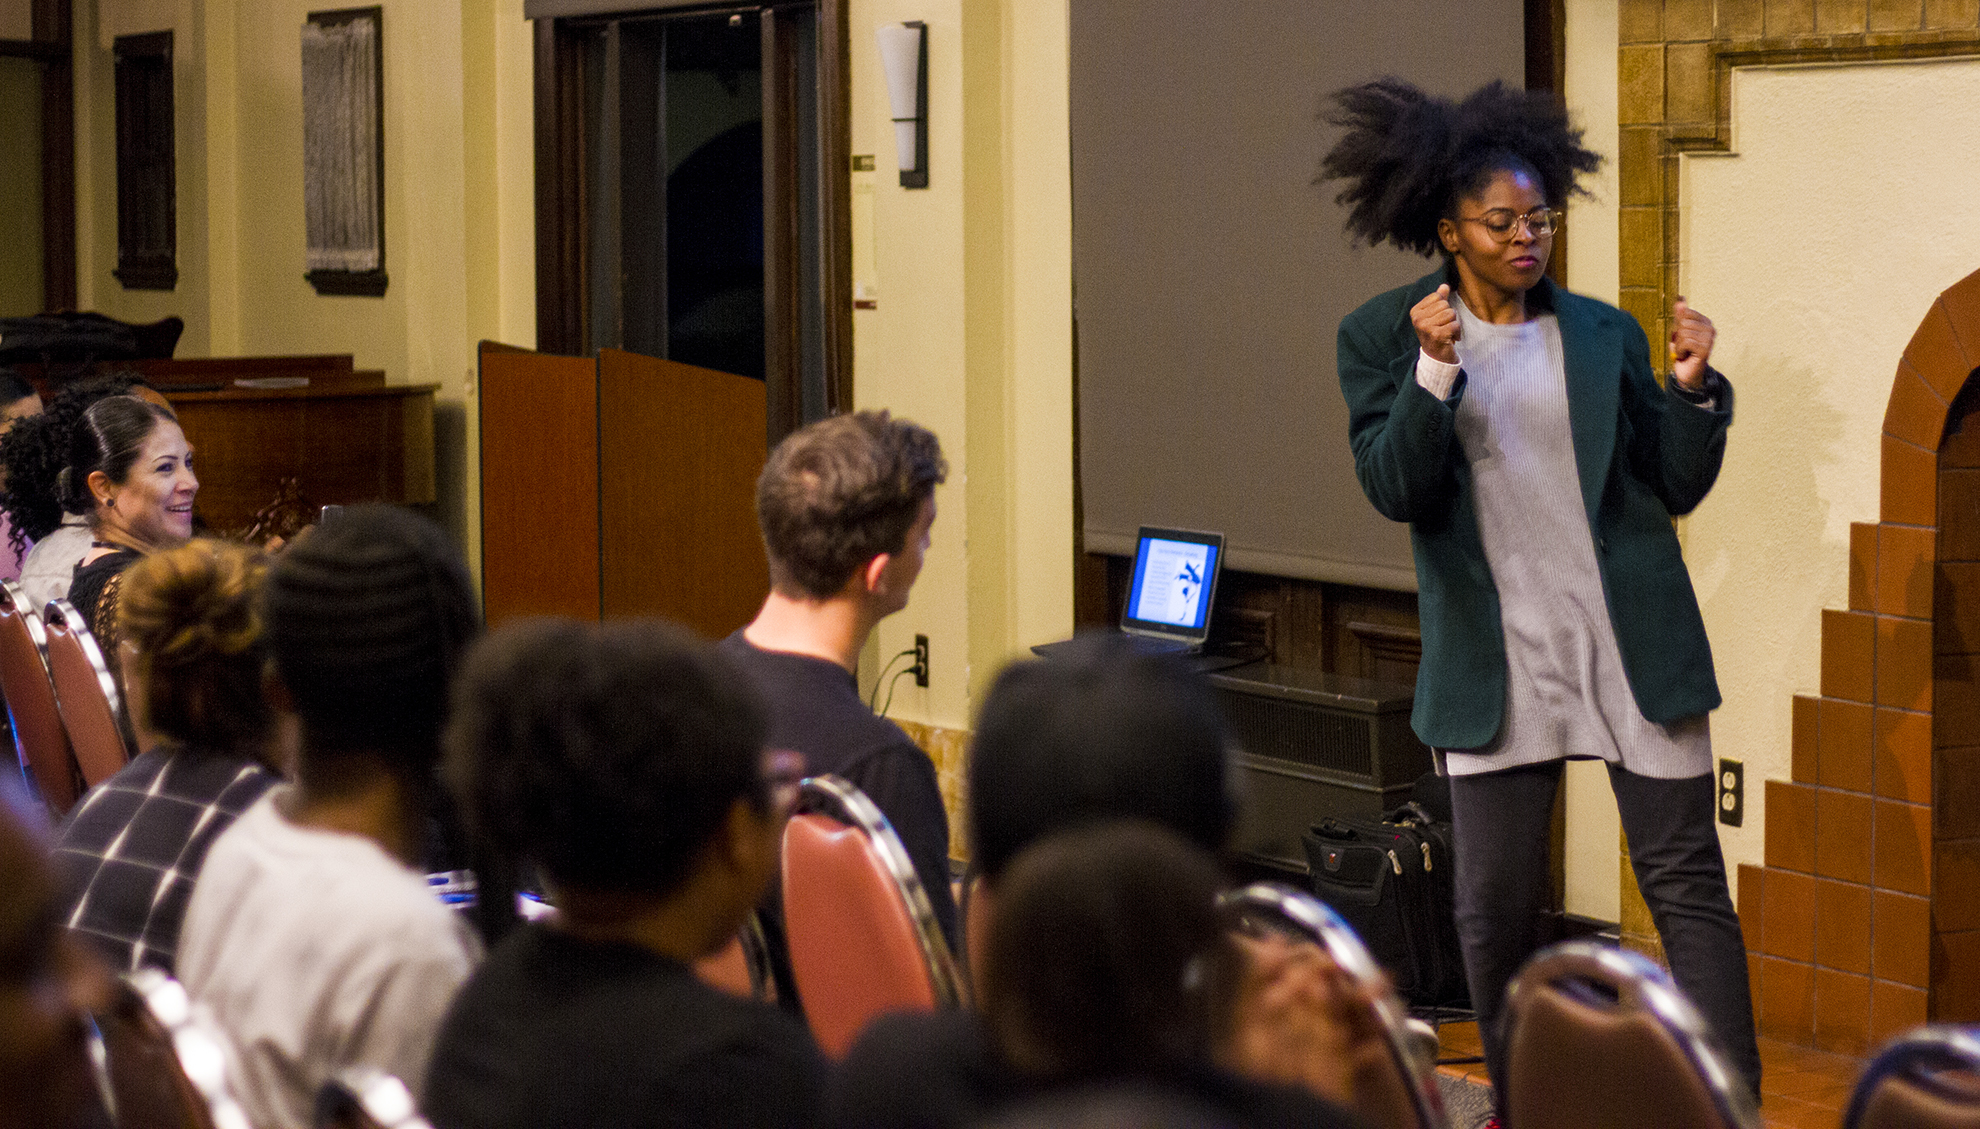 Margaret Jones, a psychology major at California Baptist University, demonstrates moves associated with hip-hop beats at a Slam Poetry Club event on Oct. 12.